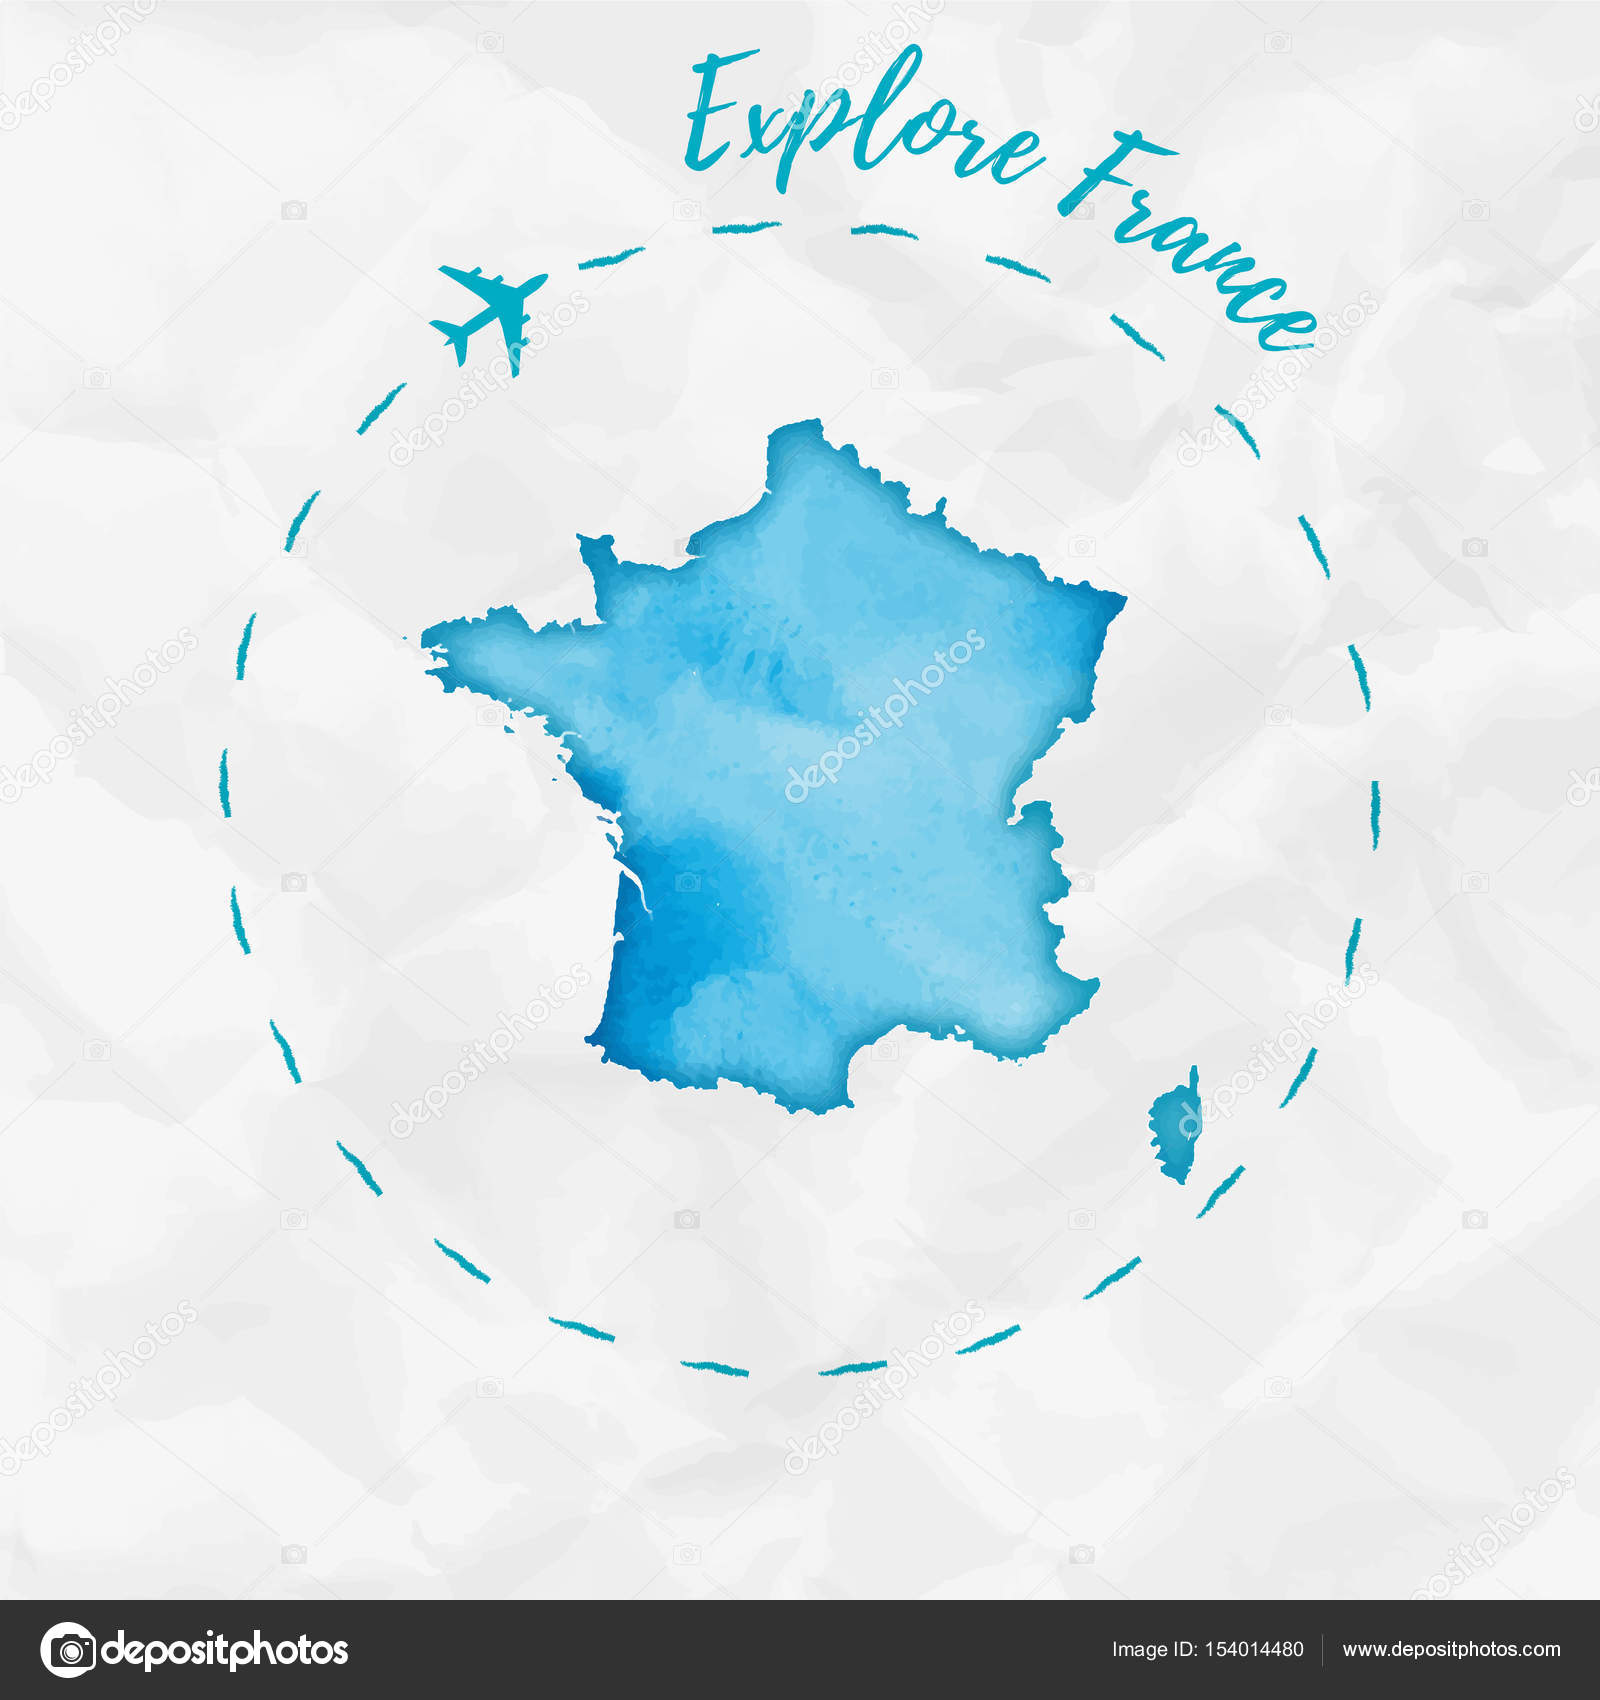 Map Of France Poster.France Watercolor Map In Turquoise Colors Explore France Poster With